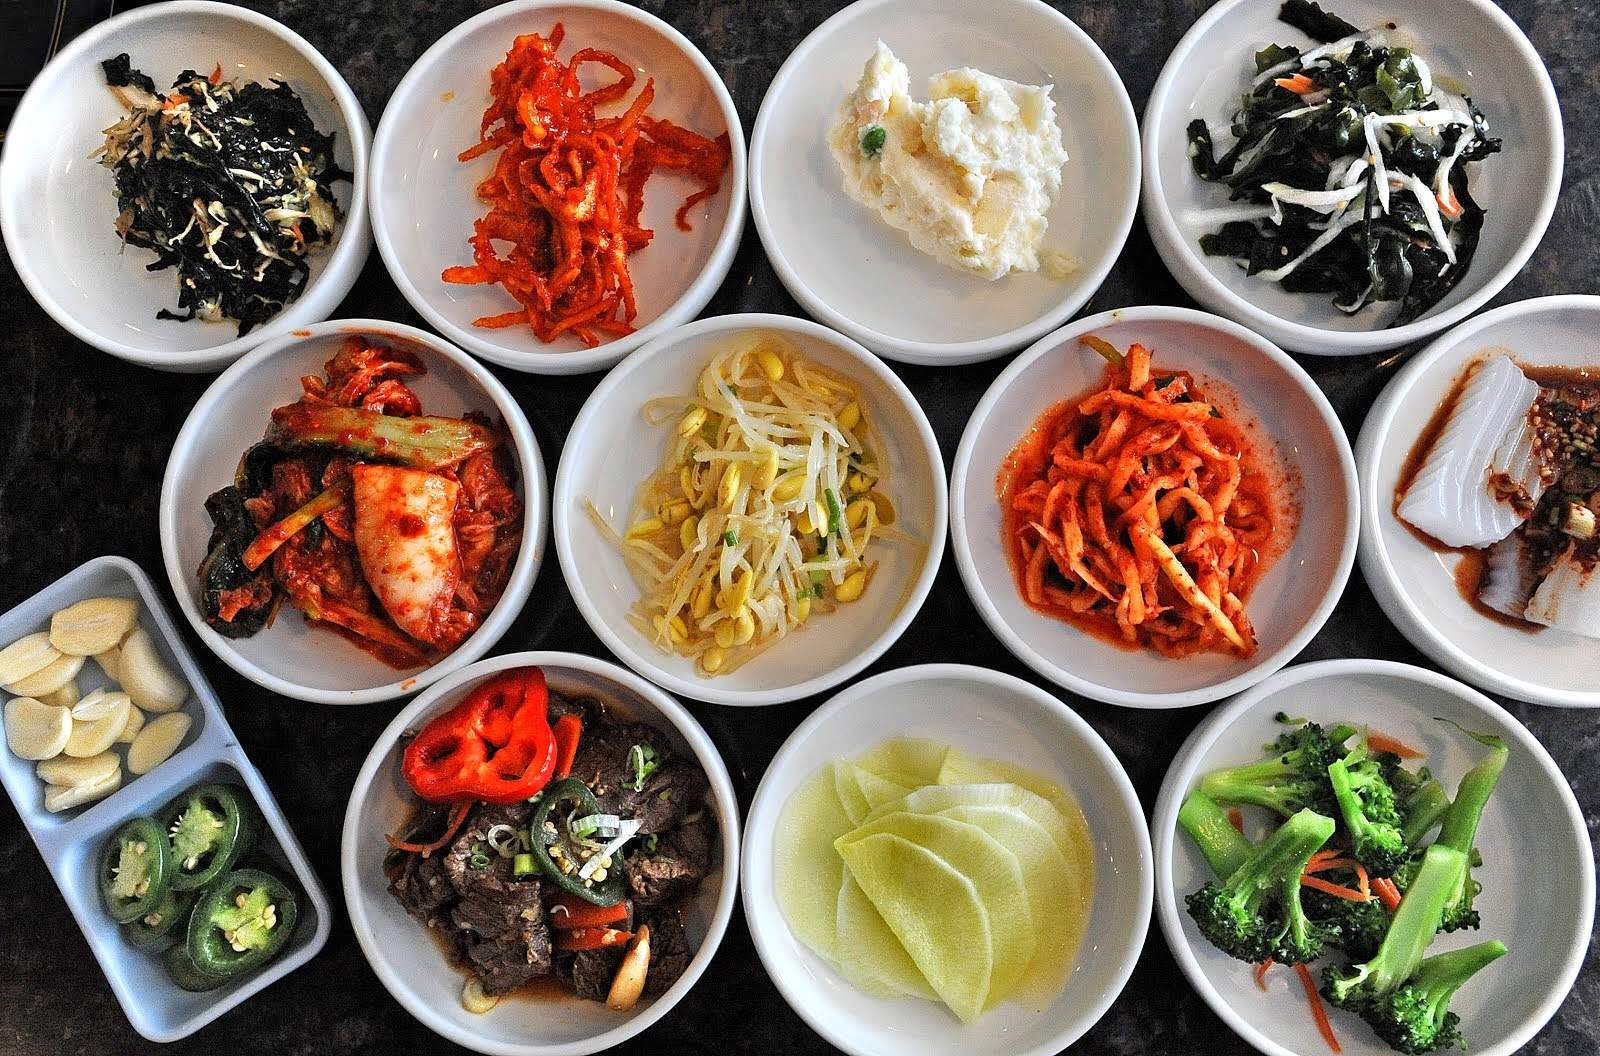 KOREAN 'BANCHAN'